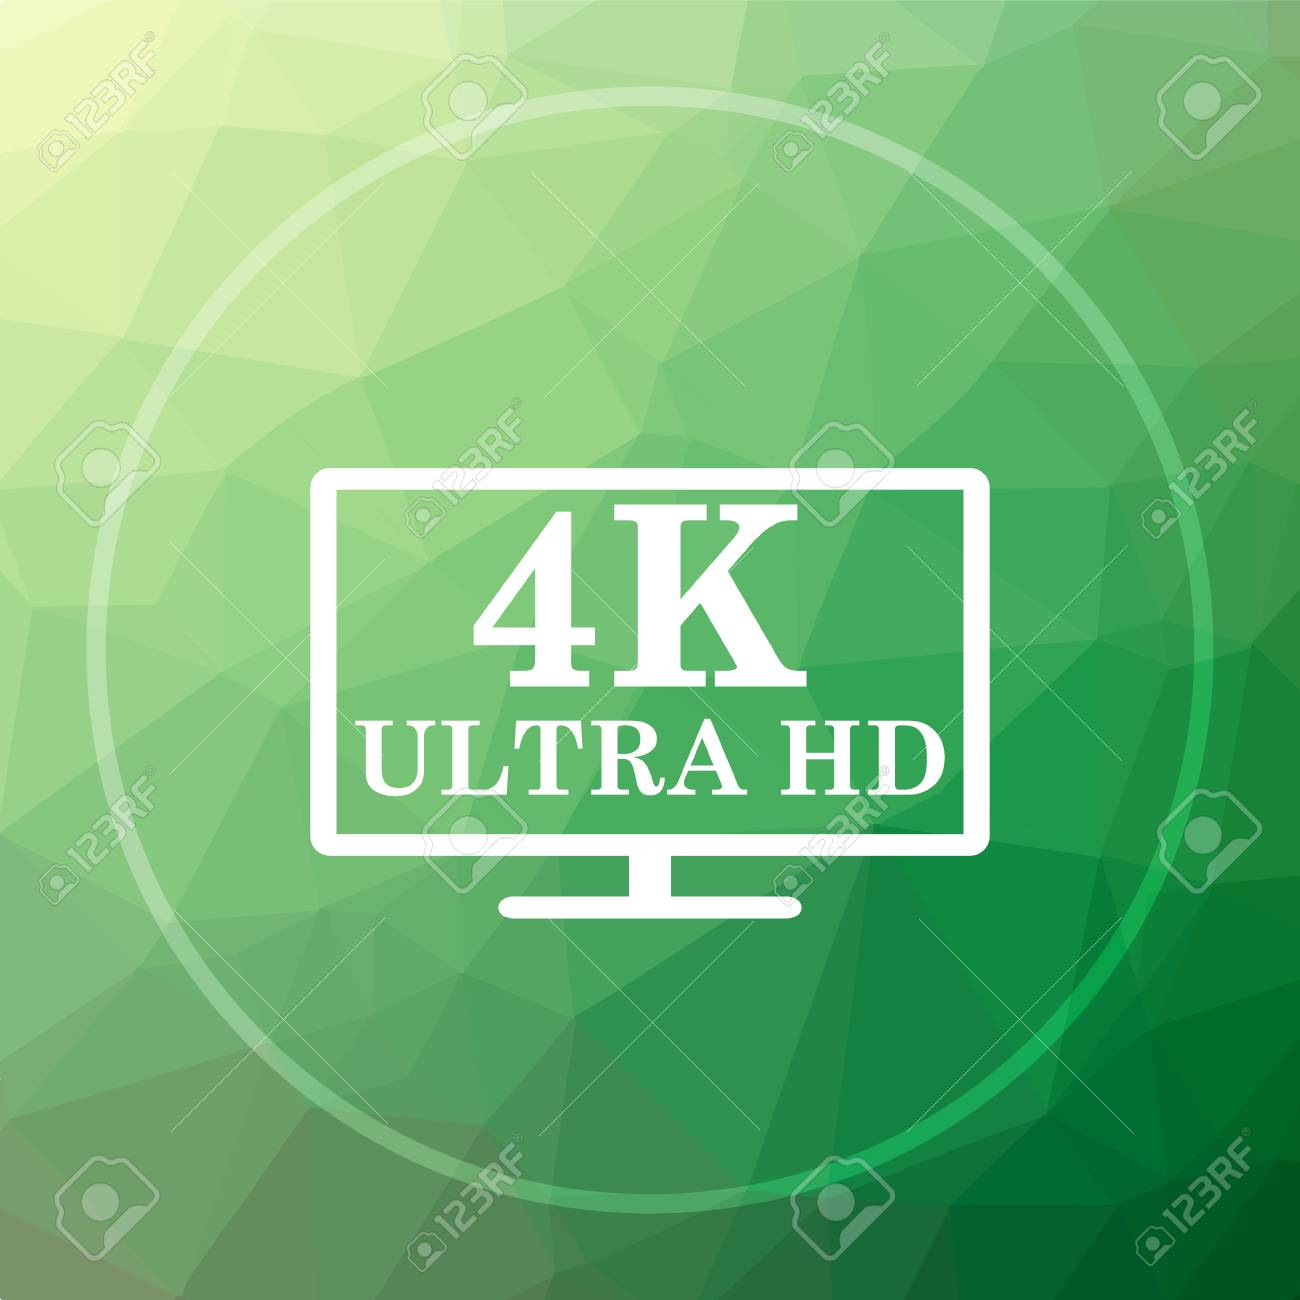 4k Ultra Hd Icon 4k Ultra Hd Website Button On Green Low Poly